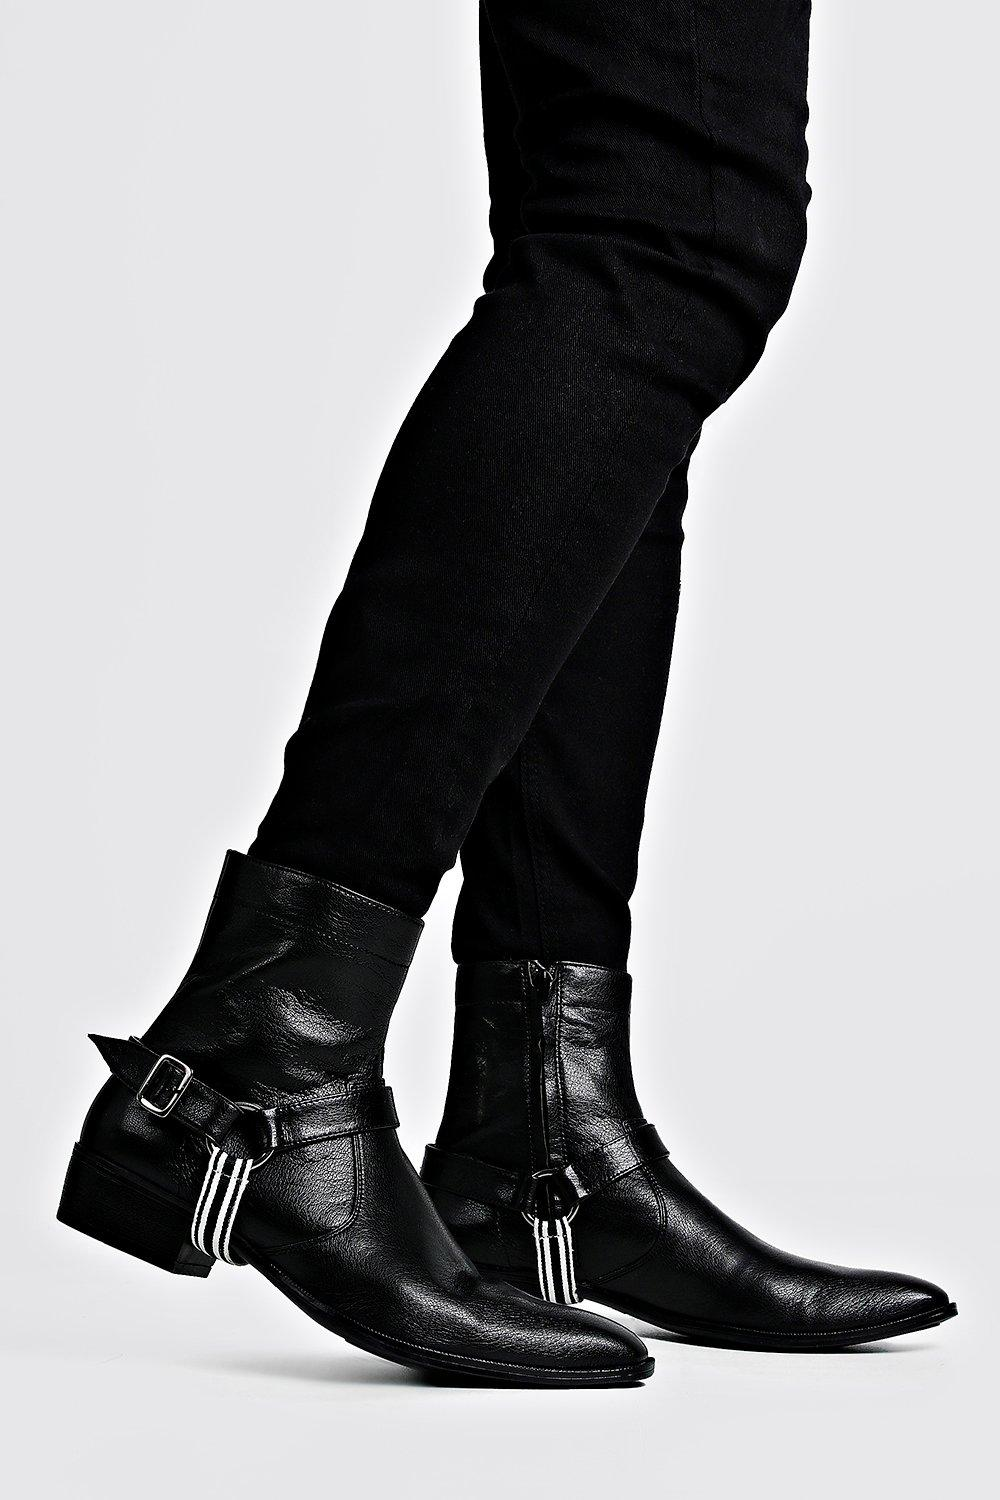 mens faux leather tape harness cuban chelsea boots - black